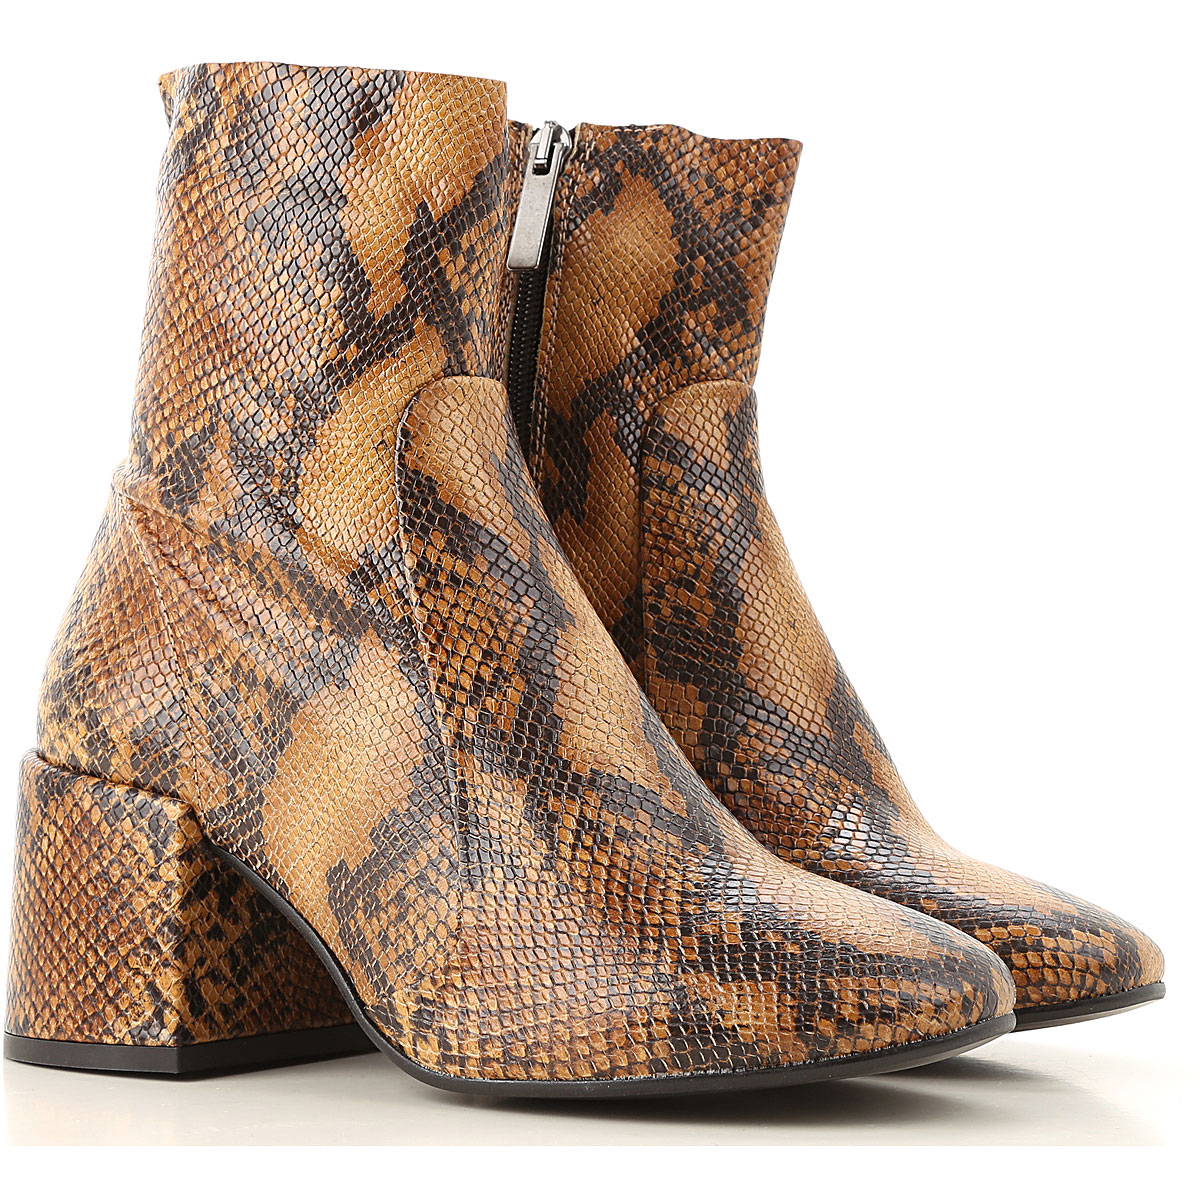 Jeffrey Campbell Boots for Women, Booties On Sale in Outlet, Land, Leather, 2019, 10 11 6 7 9